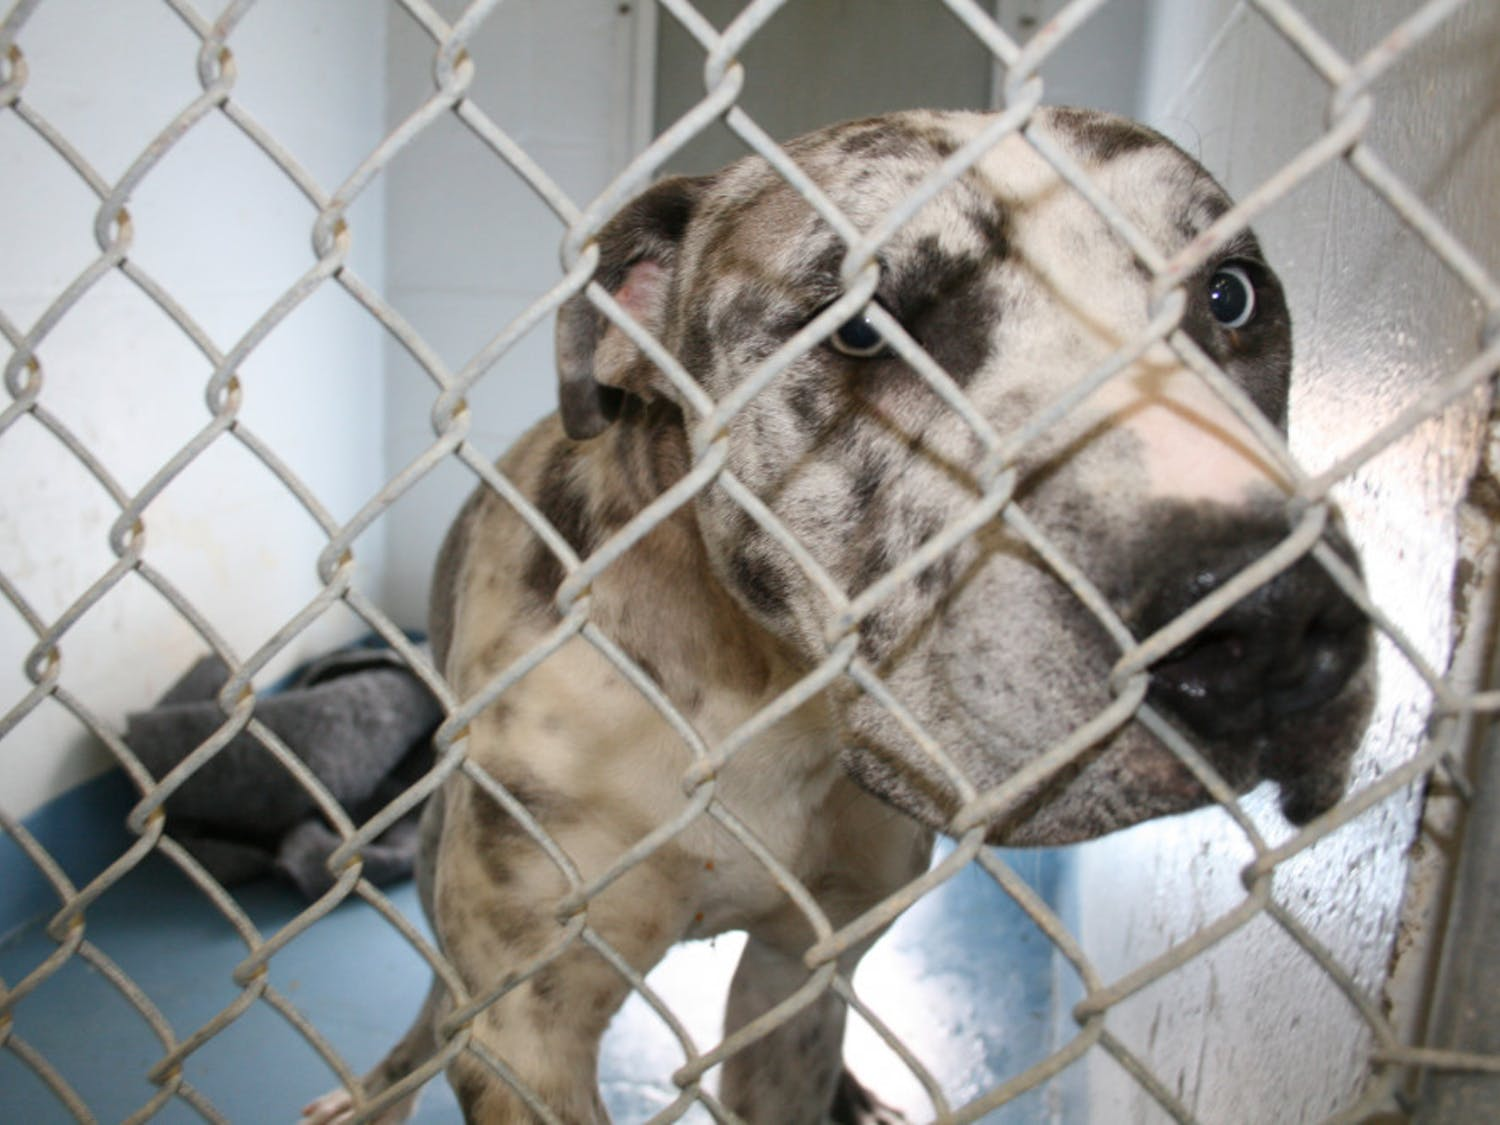 A dog looks out of his kennel at Alachua County Animal Services,3400 NE 53rd Ave.